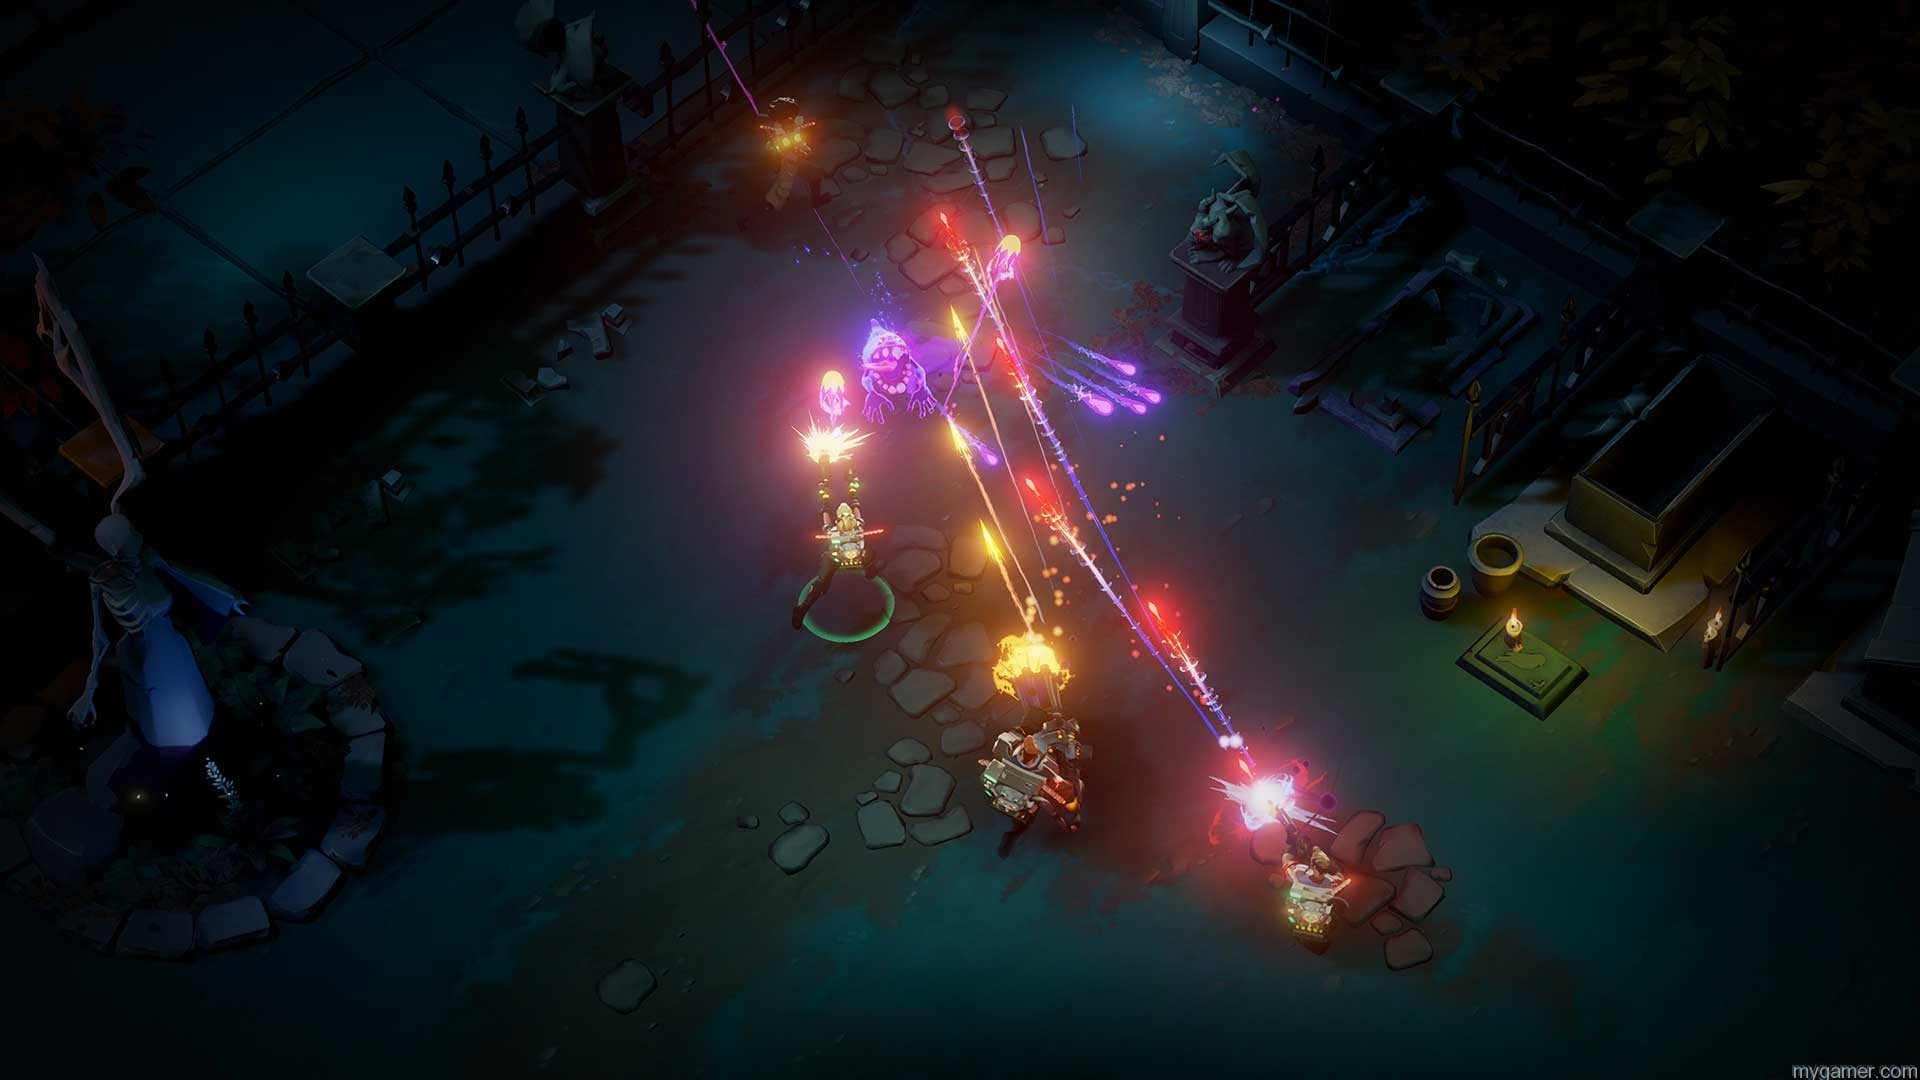 Ghostbusters_Game_2 Activision Releasing Two Ghostbuster Games This Summer - One Console and One Mobile Activision Releasing Two Ghostbuster Games This Summer - One Console and One Mobile Ghostbusters Game 2